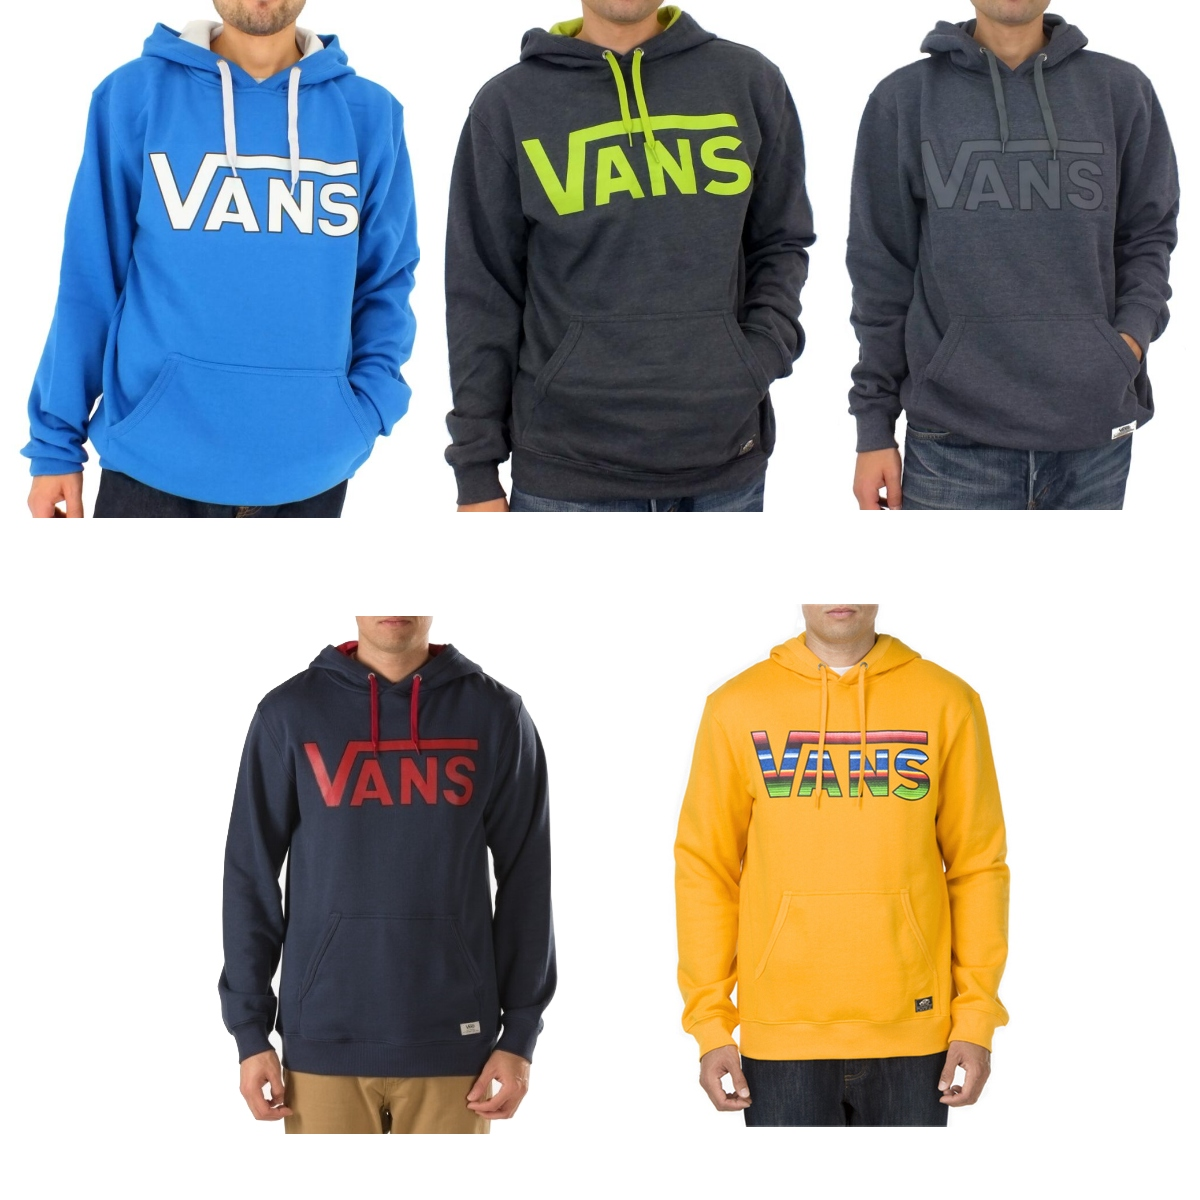 vans classic pullover herren kapuzenpullover sweatshirt hoody diverse farben ebay. Black Bedroom Furniture Sets. Home Design Ideas